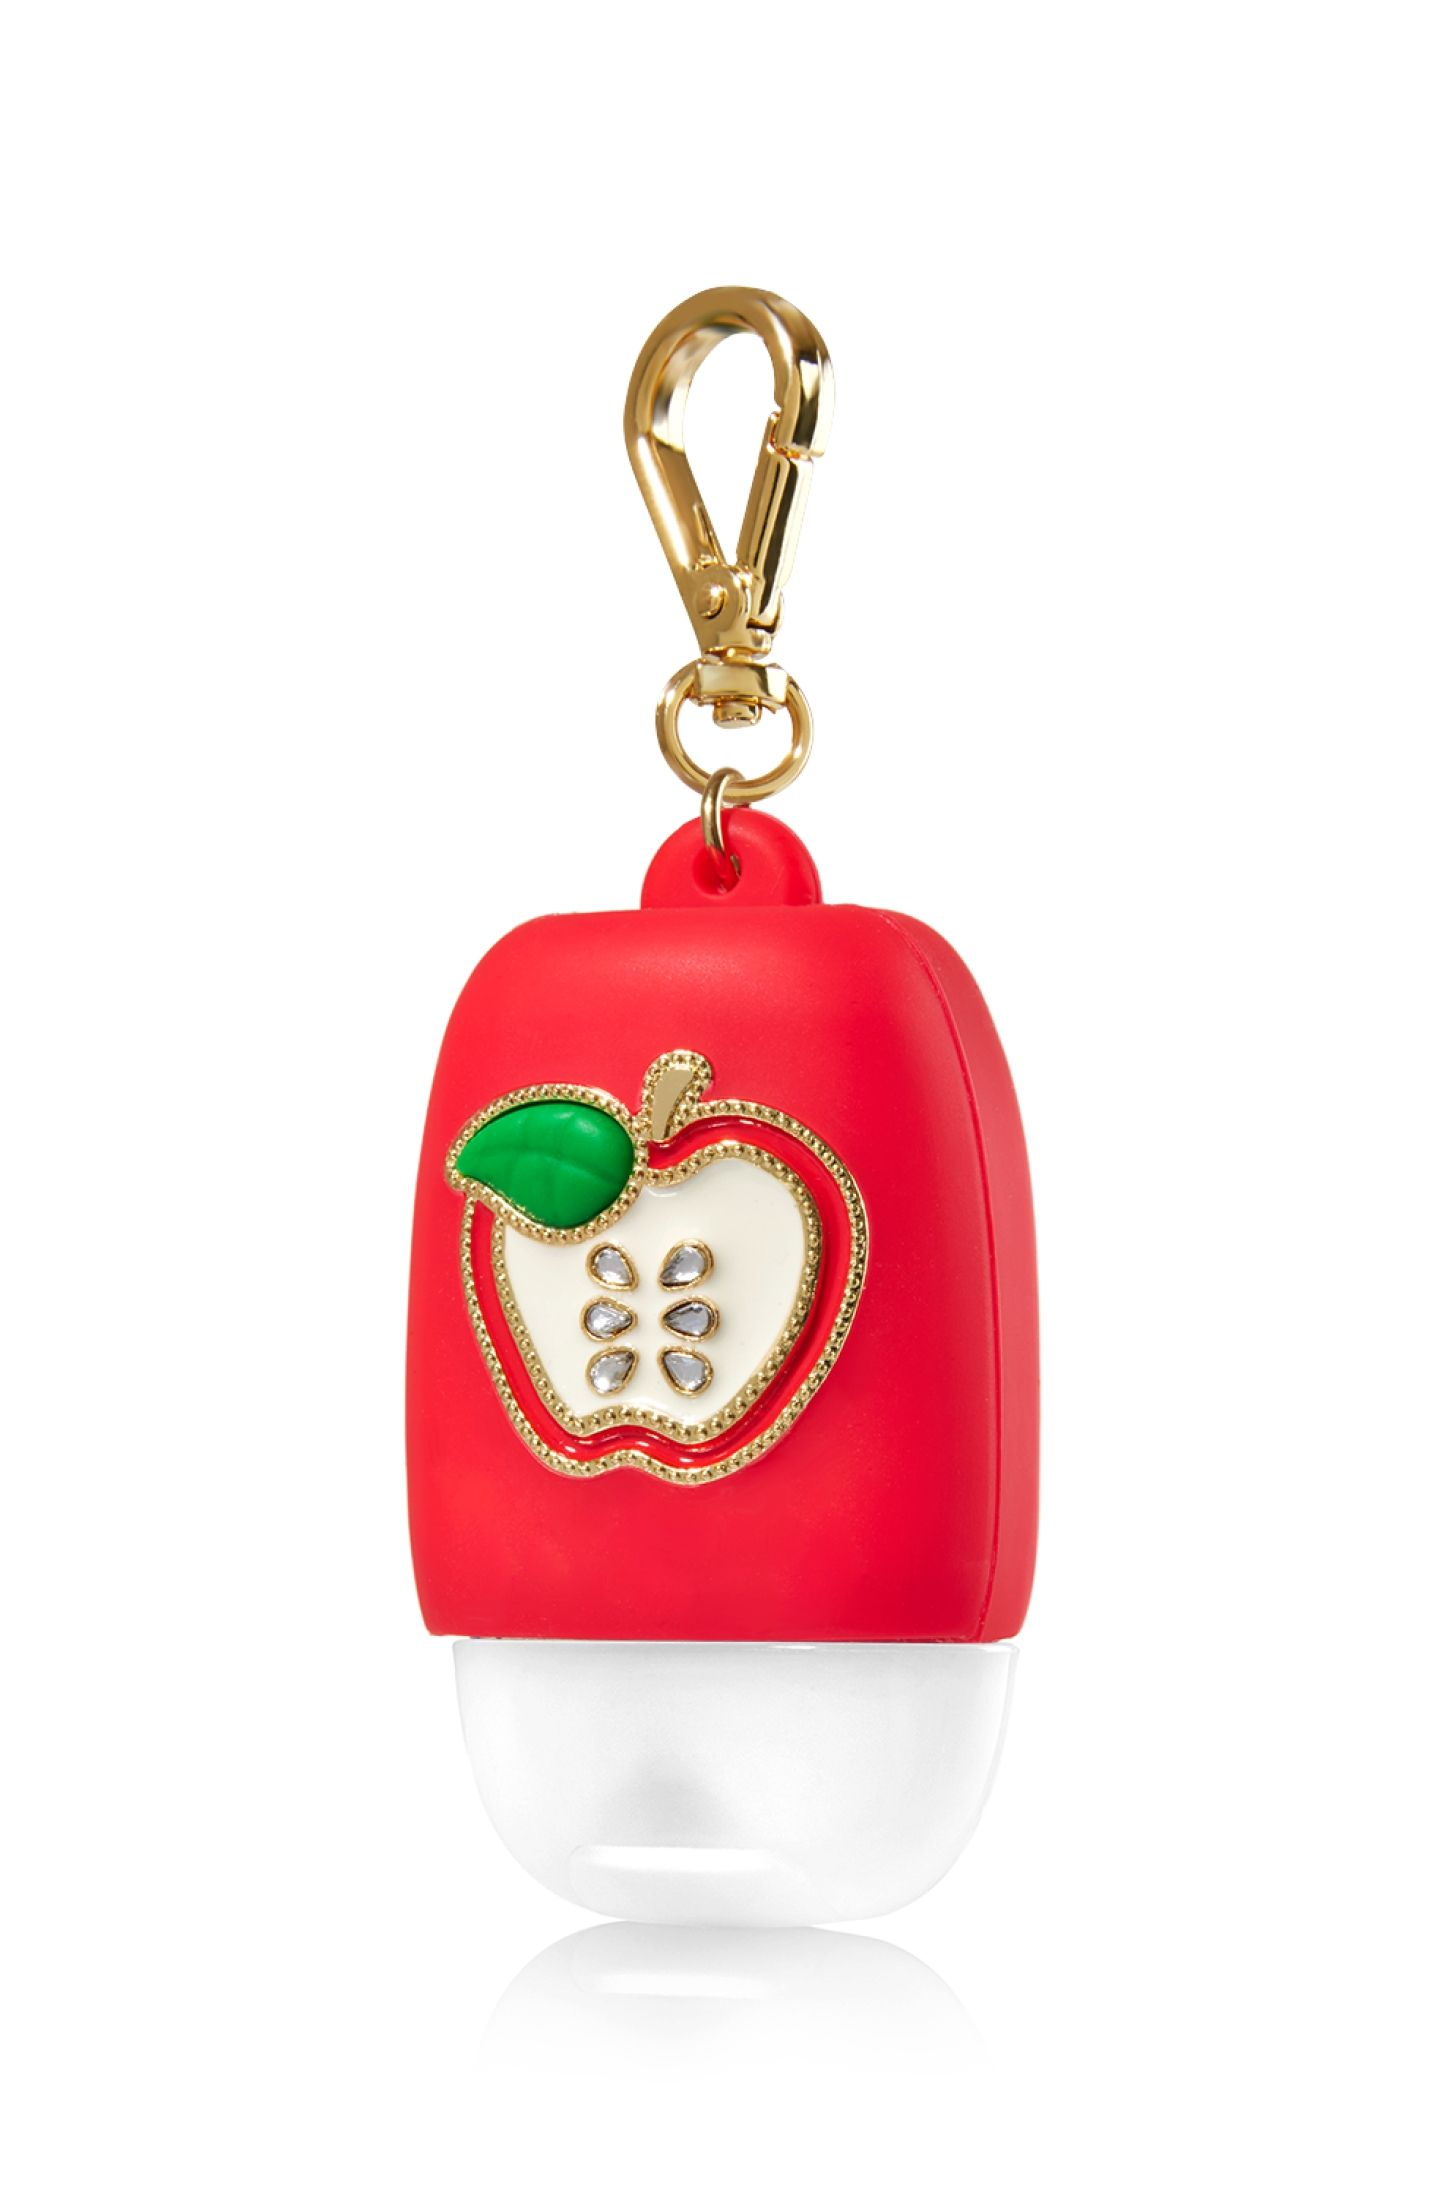 Apple Pocketbac Holder Bath Body Works Bath Body Works